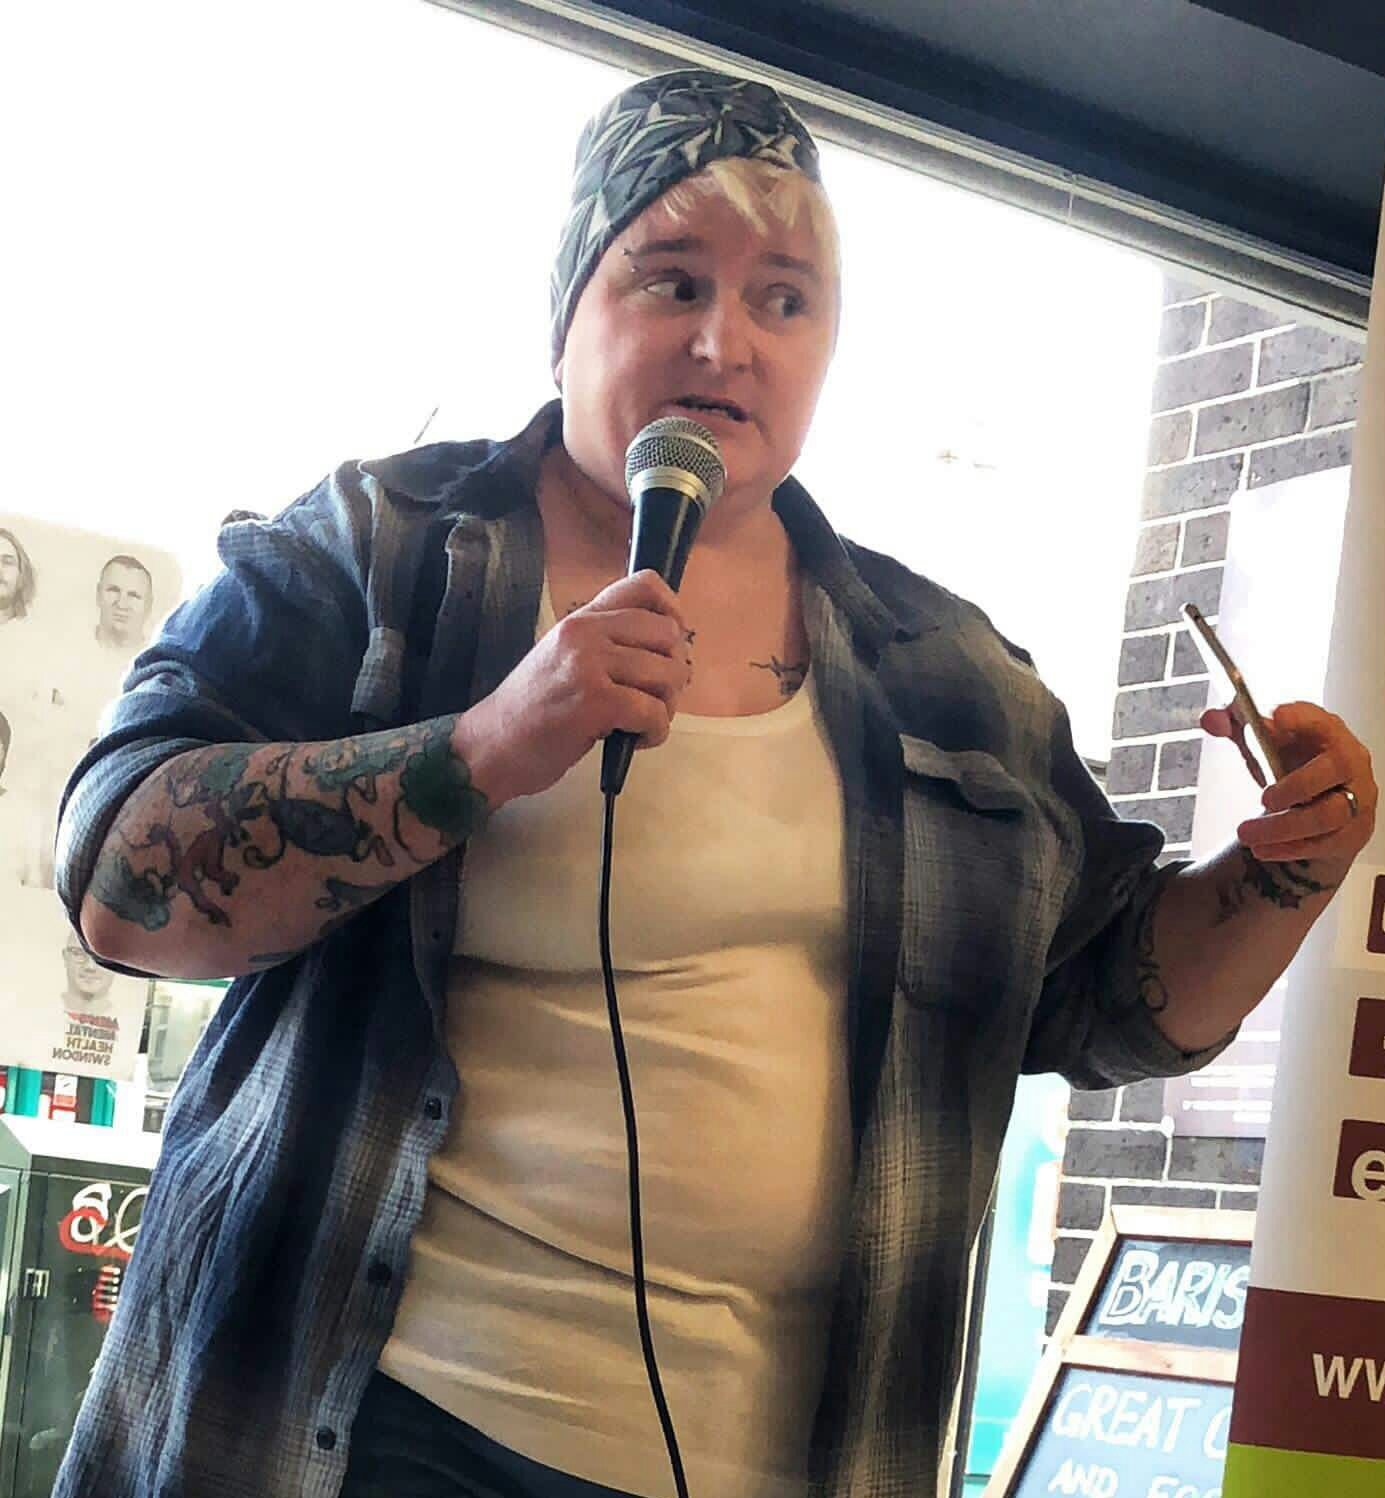 Image of a woman with blond hair and a grey patterned beanie wearing a white vest and blue shirt, speaking into a microphone